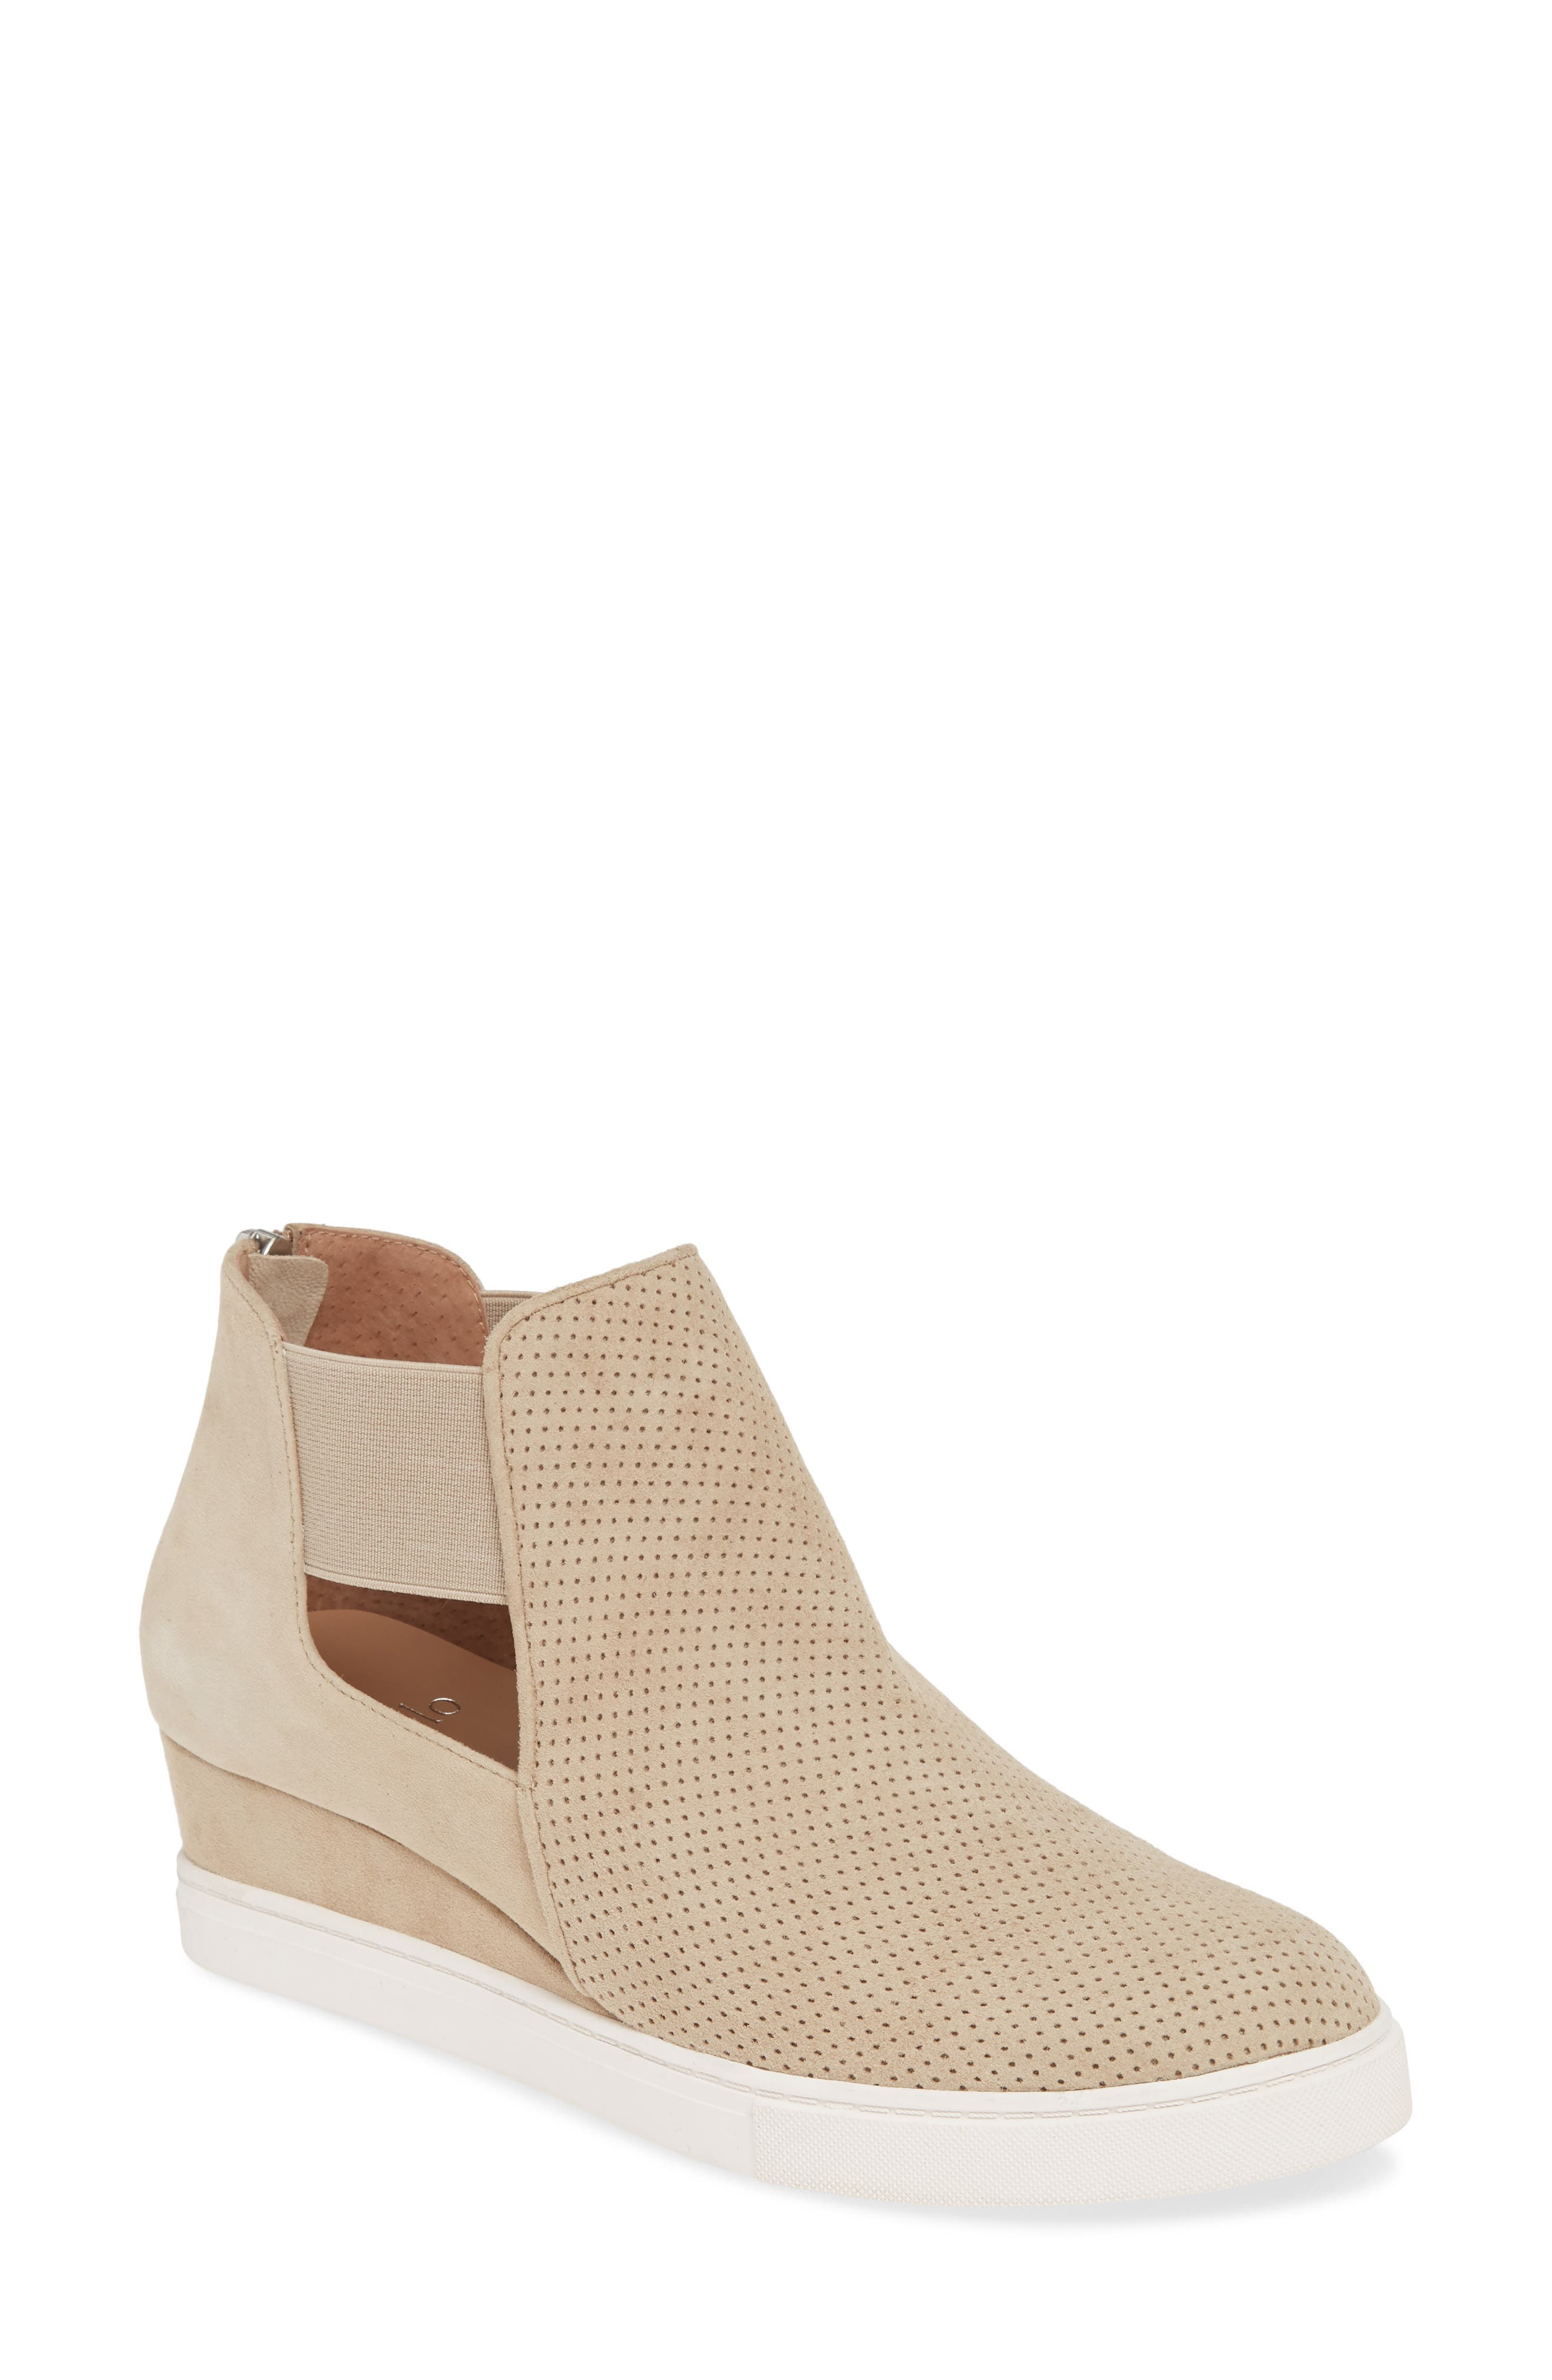 A crisp platform sole grounds a sporty-chic bootie featuring breezy perforations and elasticized straps above the cutouts at the sides. Style Name: Linea Paolo Amanda Slip-On Wedge Bootie (Women). Style Number: 5798233. Available in stores.